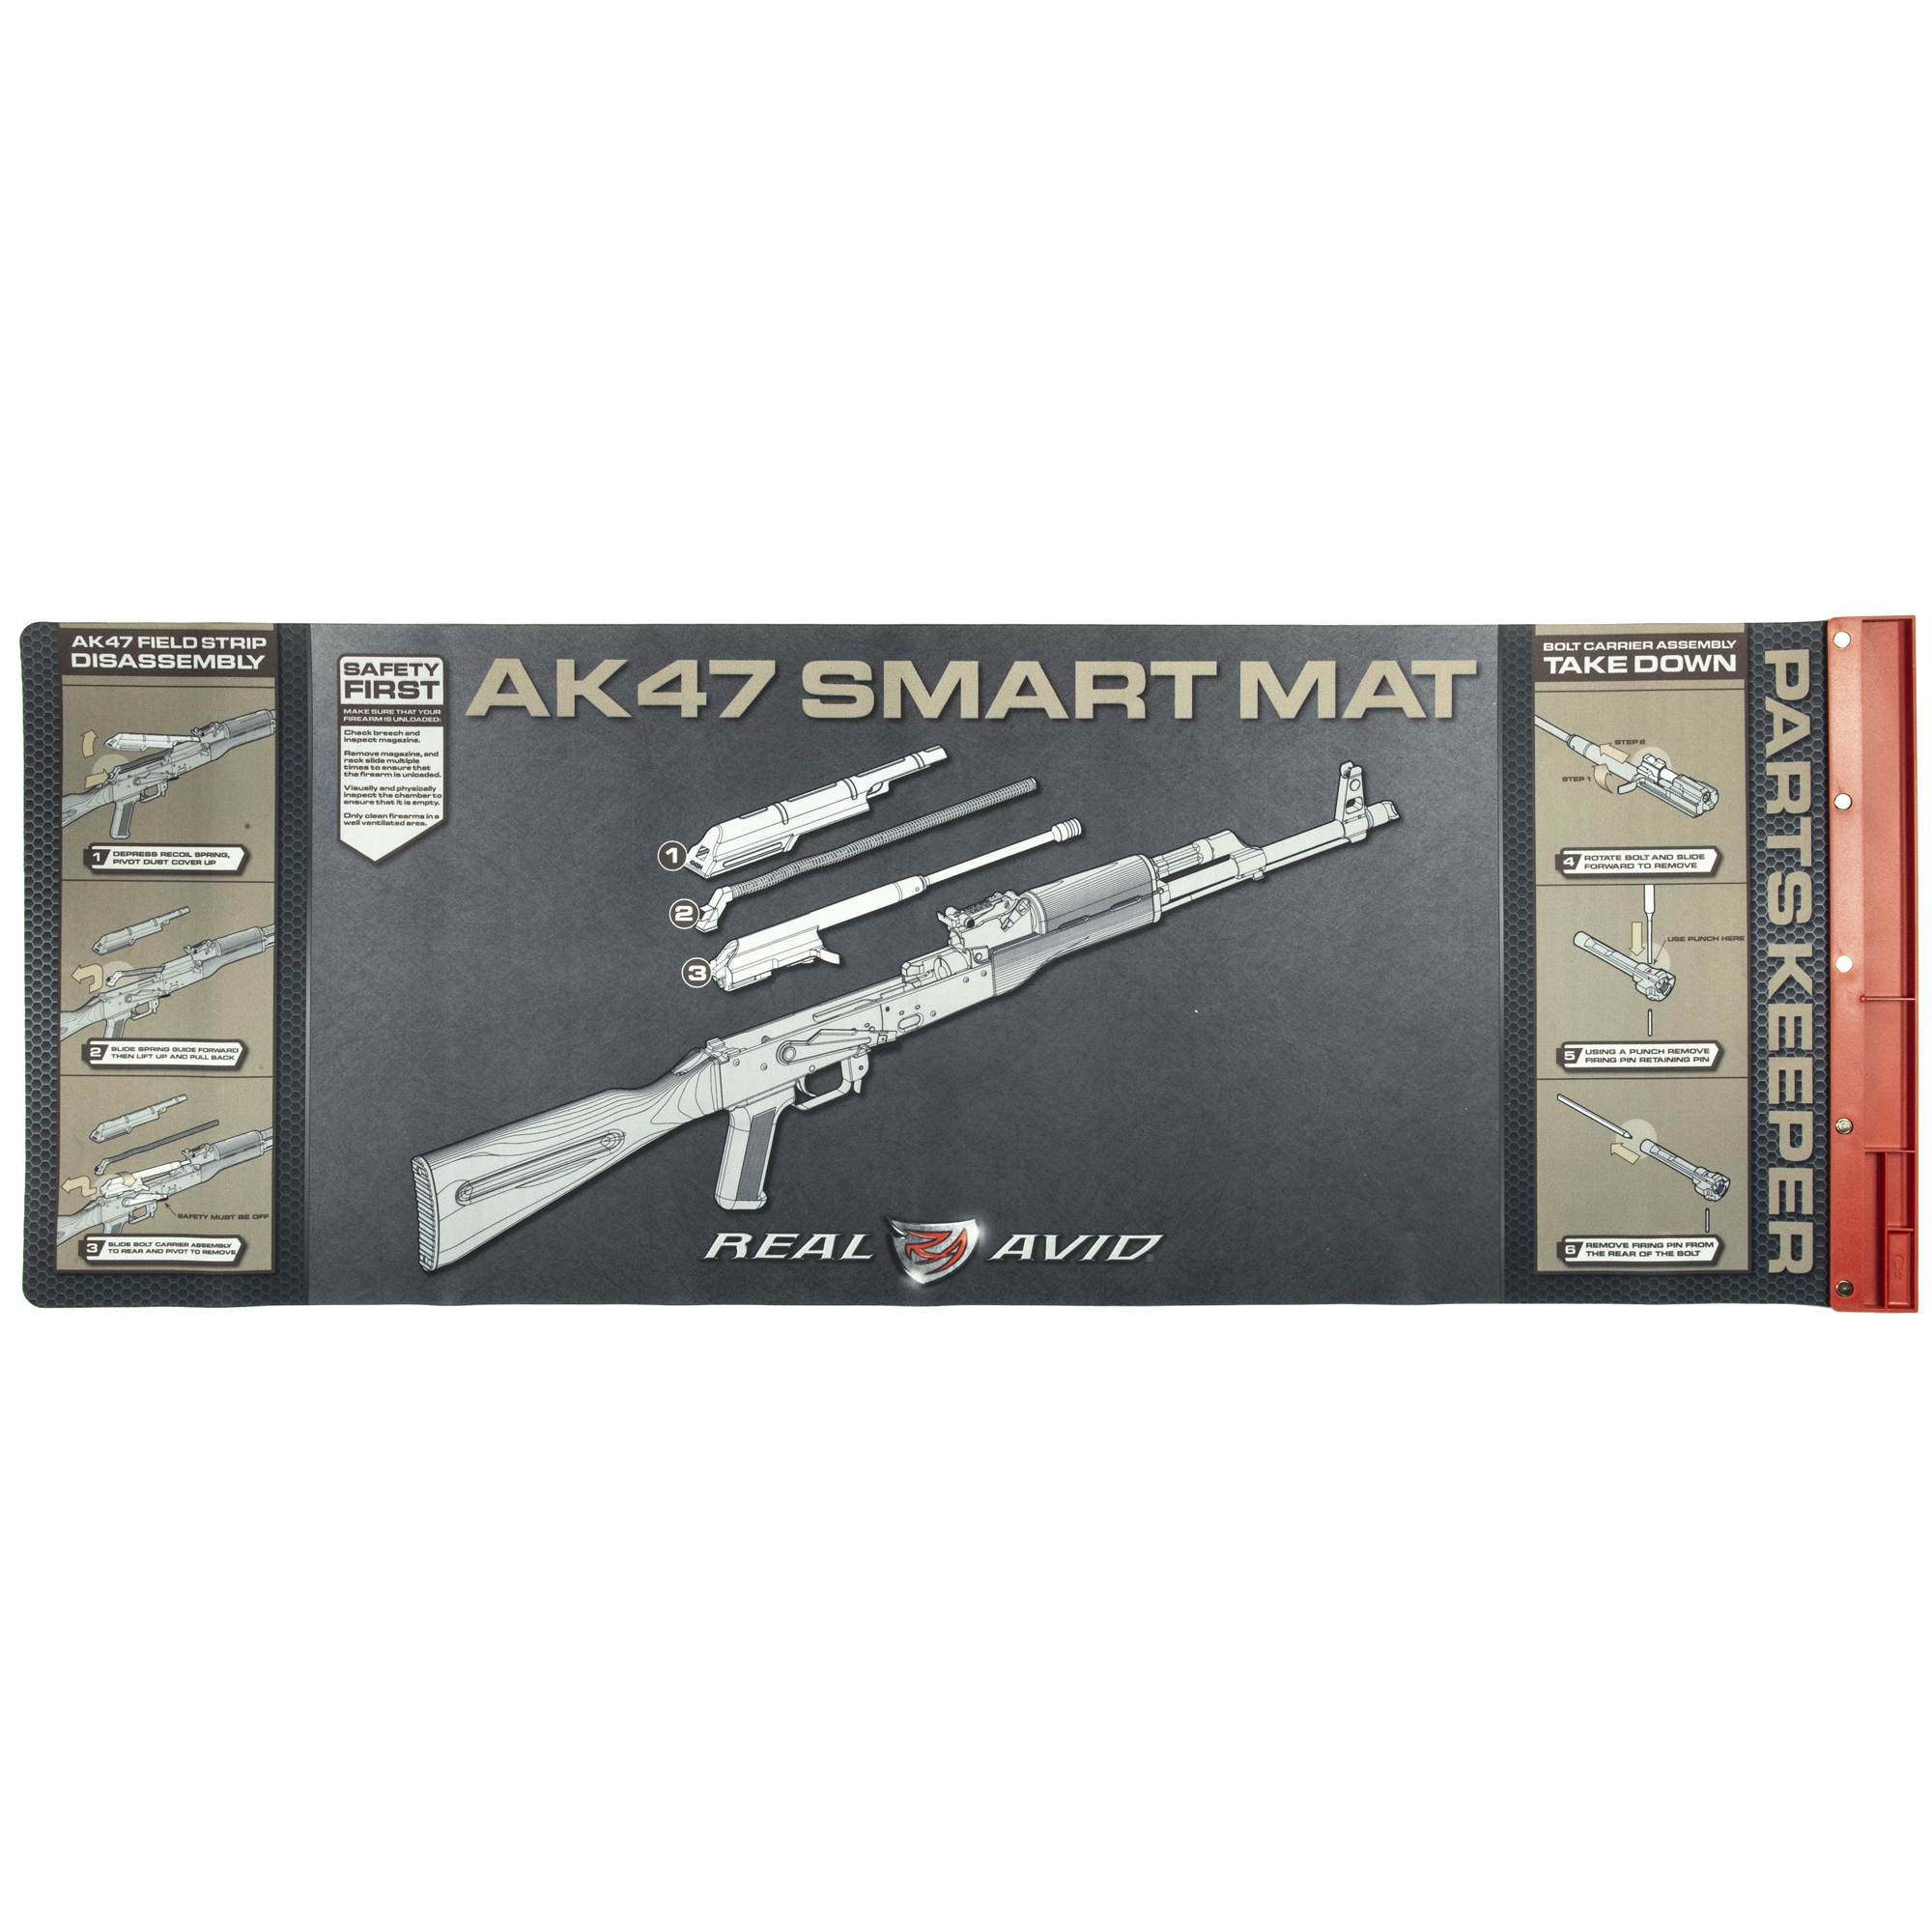 "Get a mat built by AK owners for AK owners. It's large enough to handle a field-stripped AK47 with the visible instructions to get you there. The attached parts tray ensures your pins"" bolts and springs are never lost again. The oil-resistant surface allows you to properly clean your gun without ruining the kitchen table."